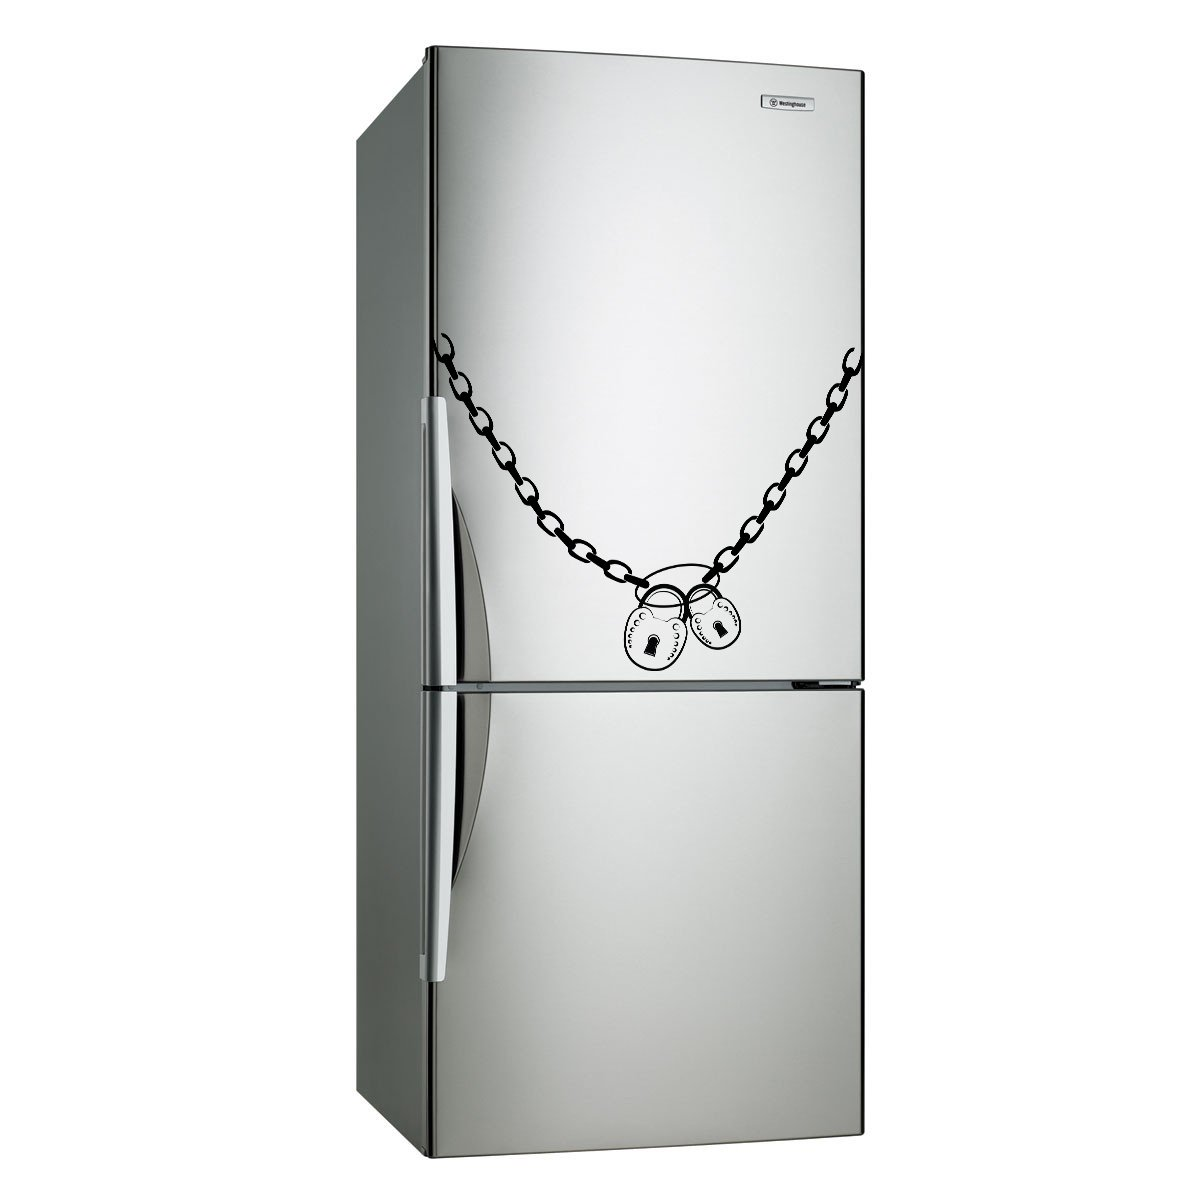 (31''x24'') Vinyl Fridge Decal Lock & Chain Refrigerator Art Decor Home Sticker + Free Decal Gift!